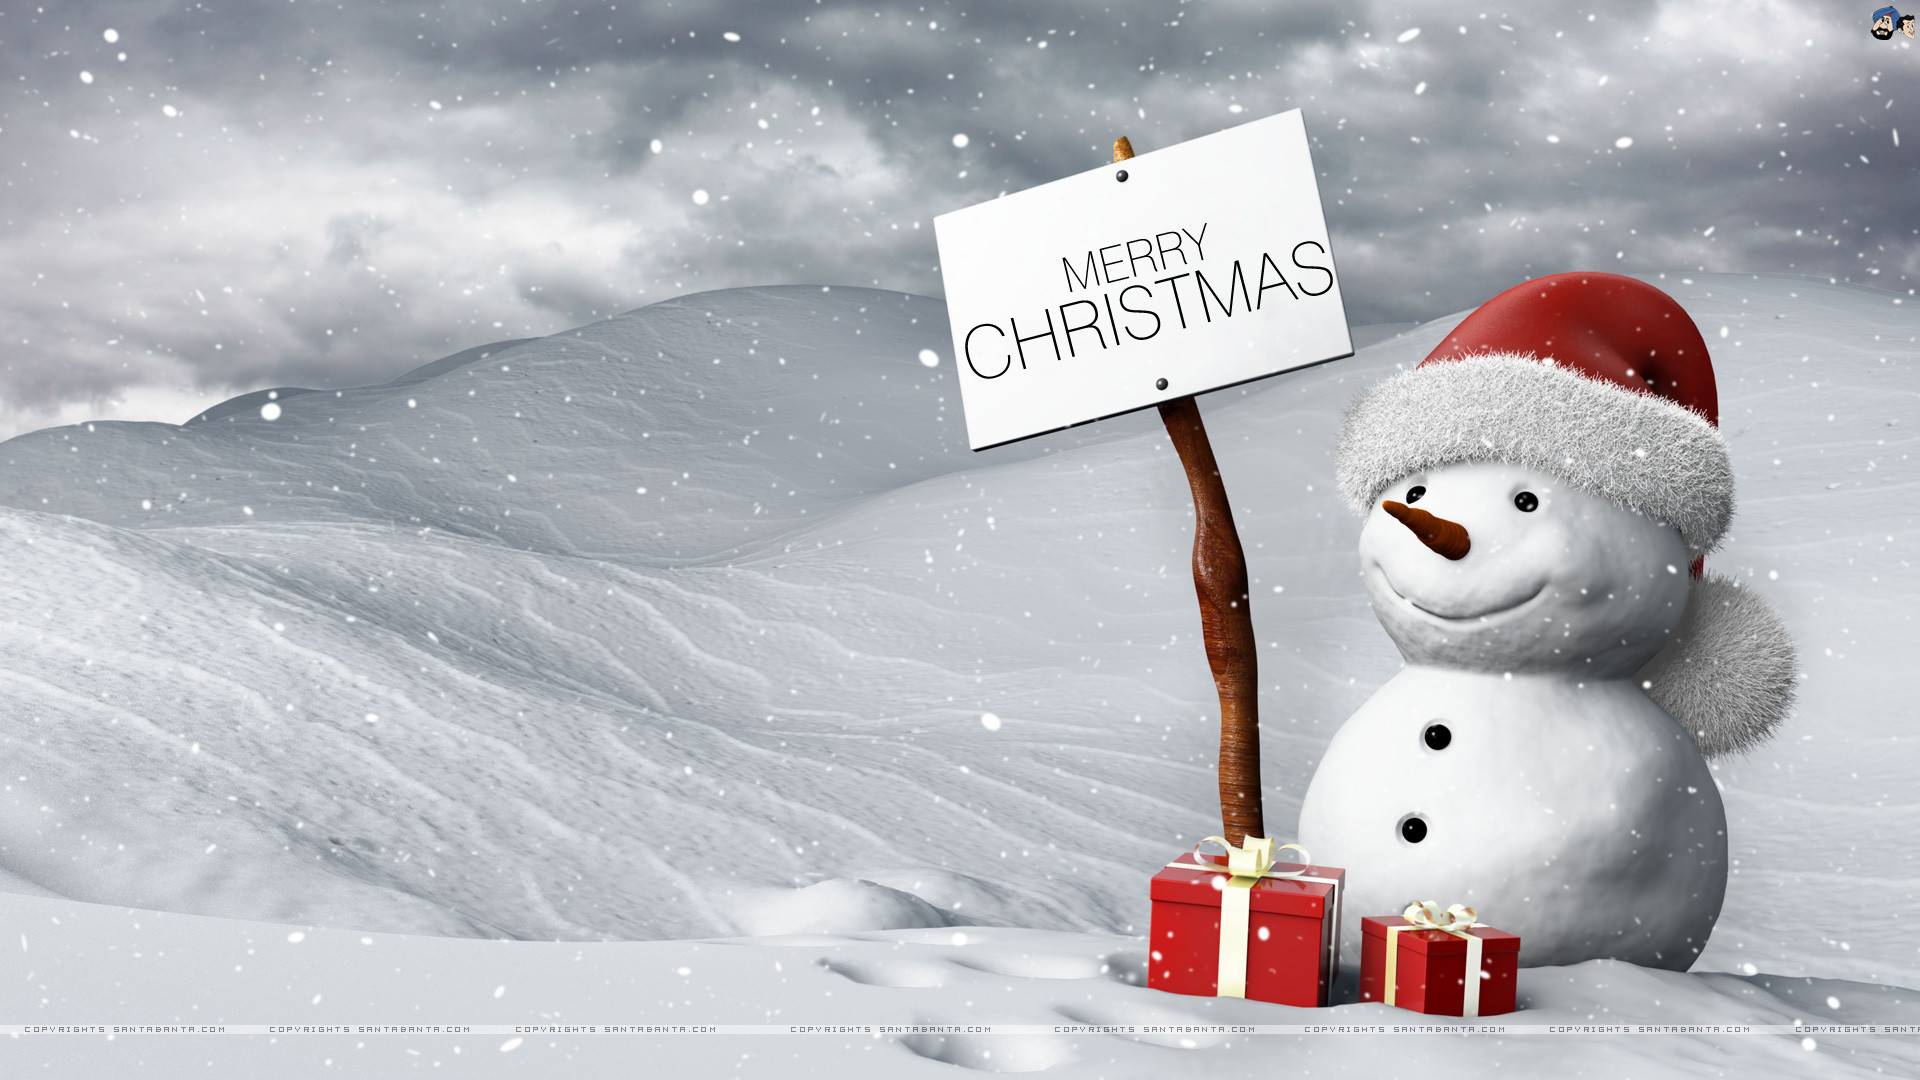 Christmas wallpapers hd 1080p 75 images 1080x1920 christmas wallpaper hd 1080p download 2560x1736 christmas santa claus voltagebd Image collections